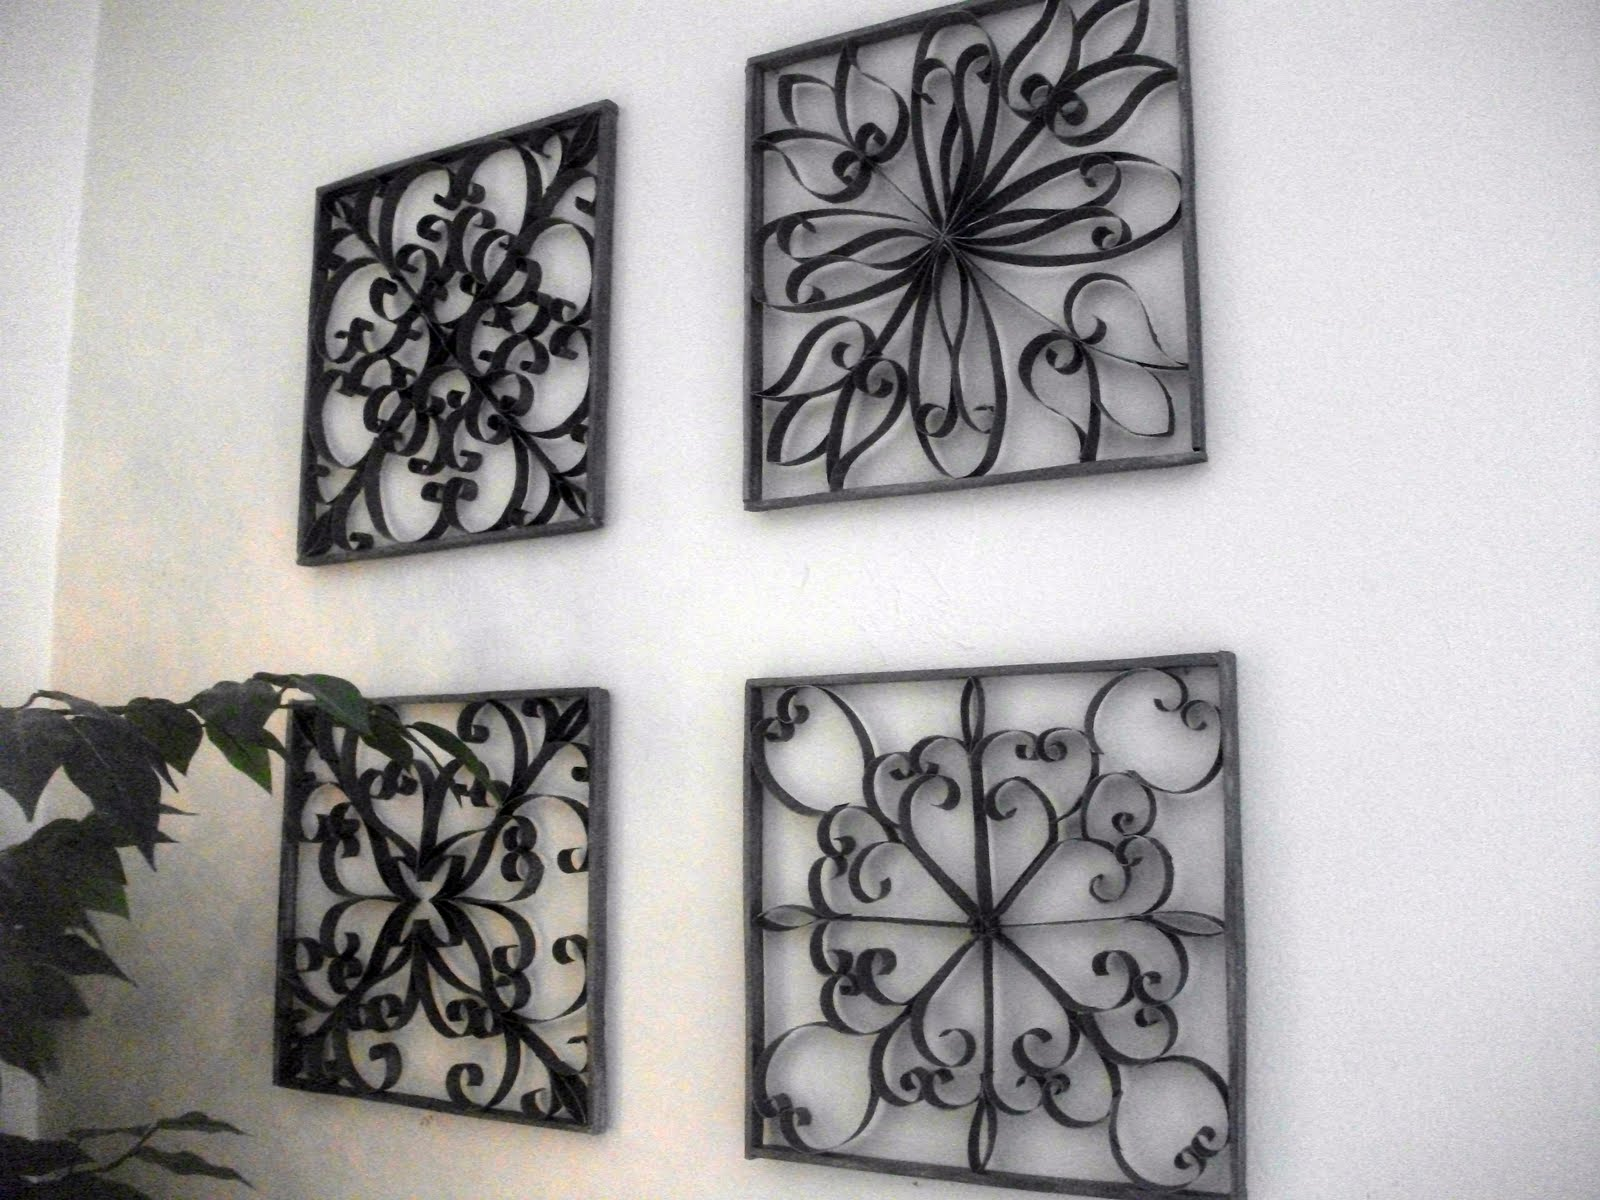 Wrought Iron Decorative Wall Pieces Wrought Iron Wall Decor  Wall Decor Ideas